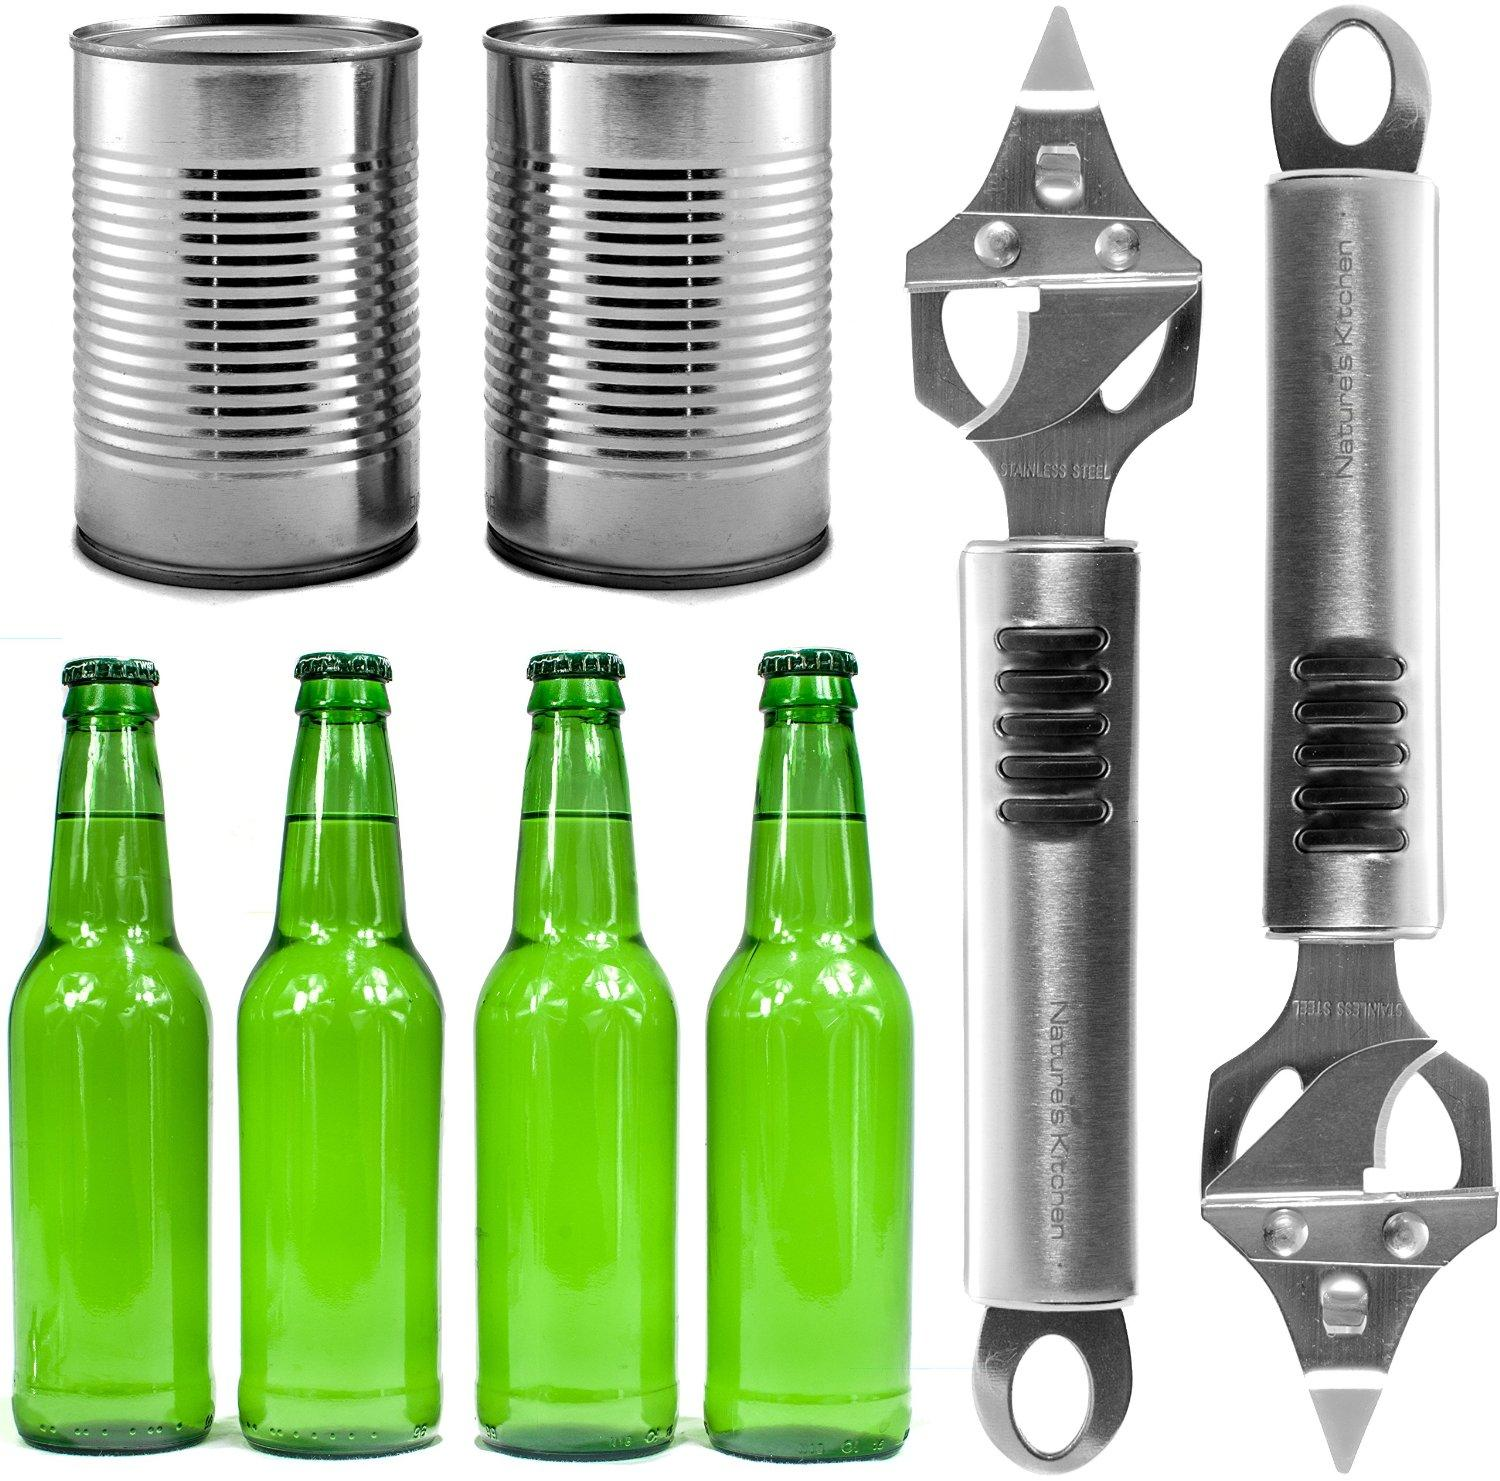 Bottle Opener & Can Punch Multitool by Natures Kitchen - Commercial Grade Stainless Steel